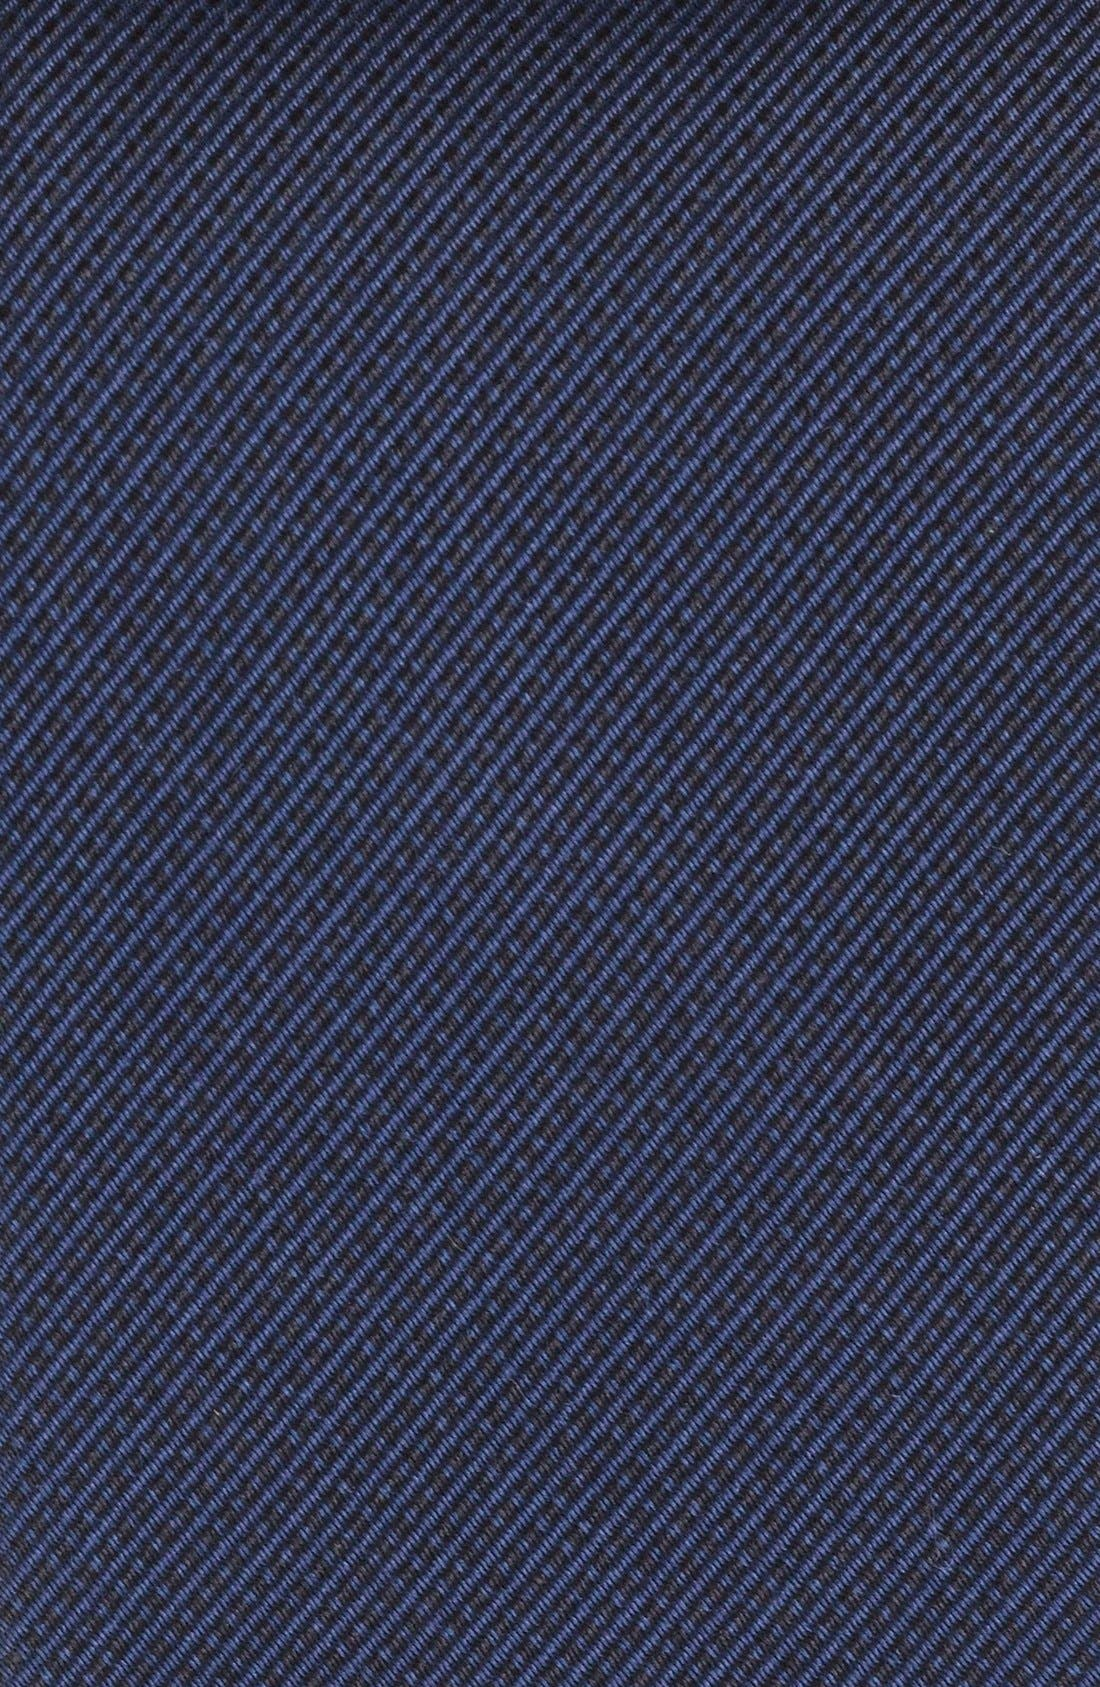 Alternate Image 2  - The Rail Silk Woven Tie